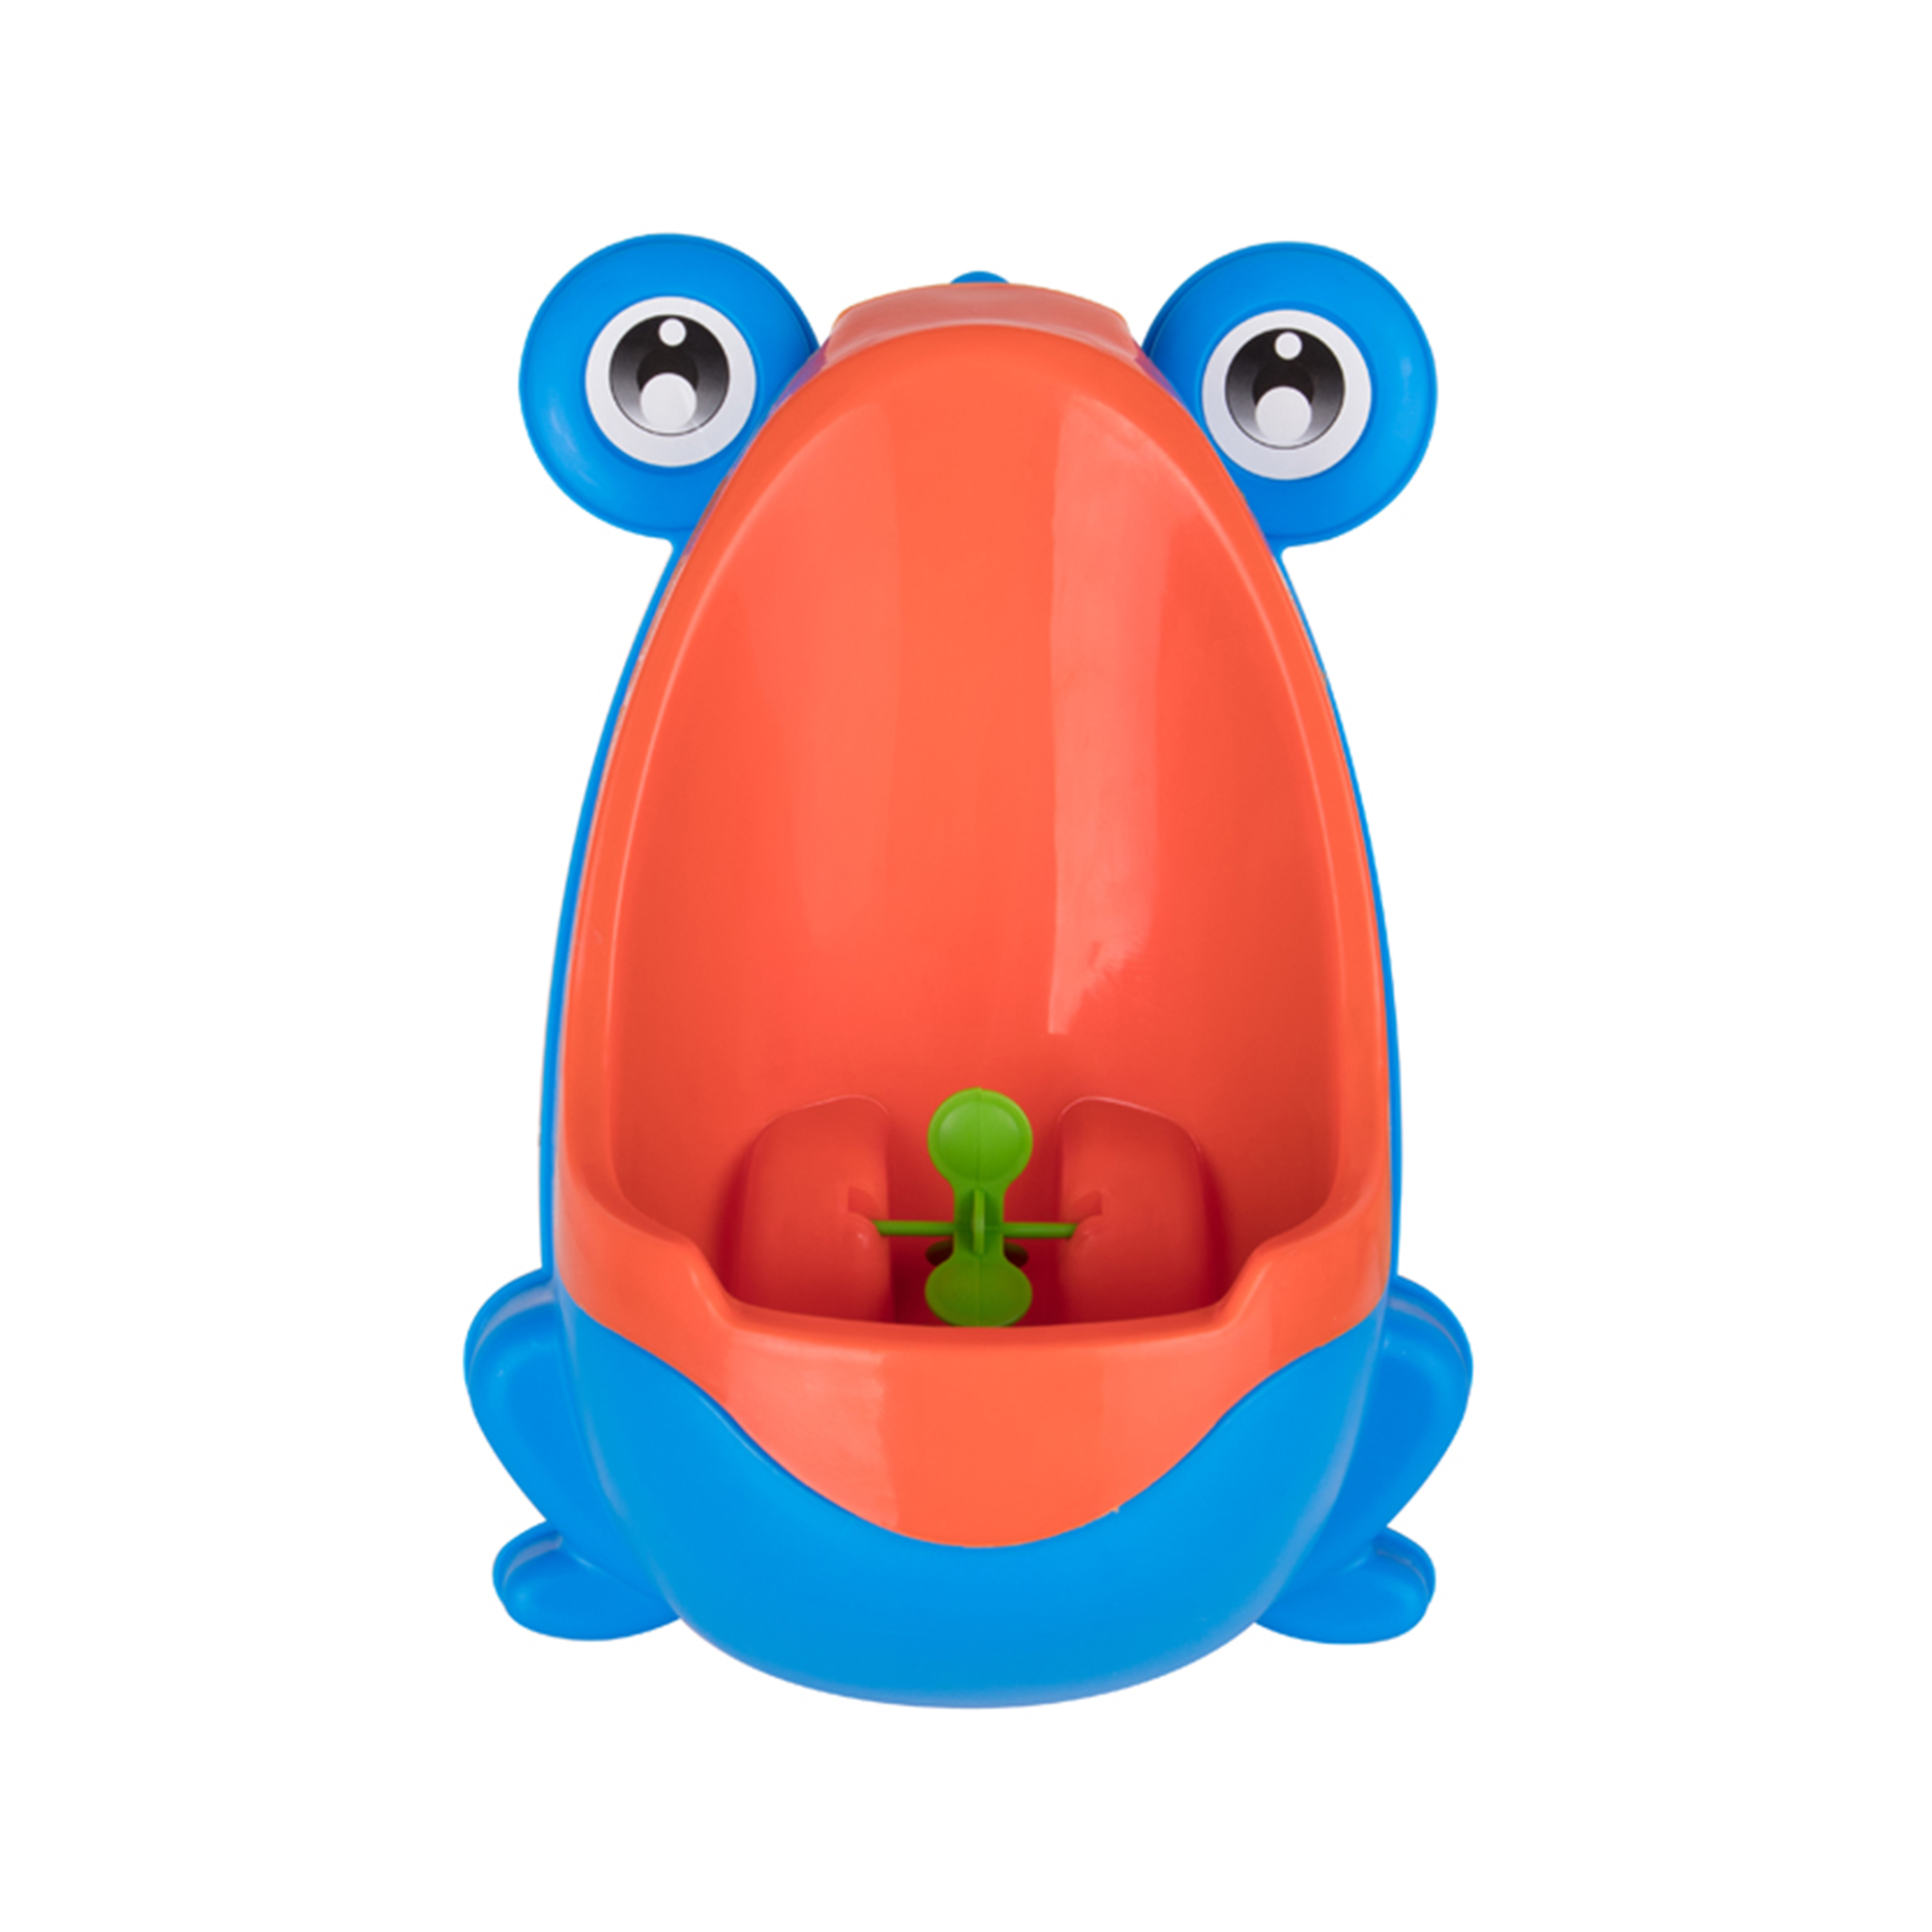 NK Frog Potty Toilet Children Training Kids Urinal for Boys Pee Trainer Bathroom Hanging & Stand Up